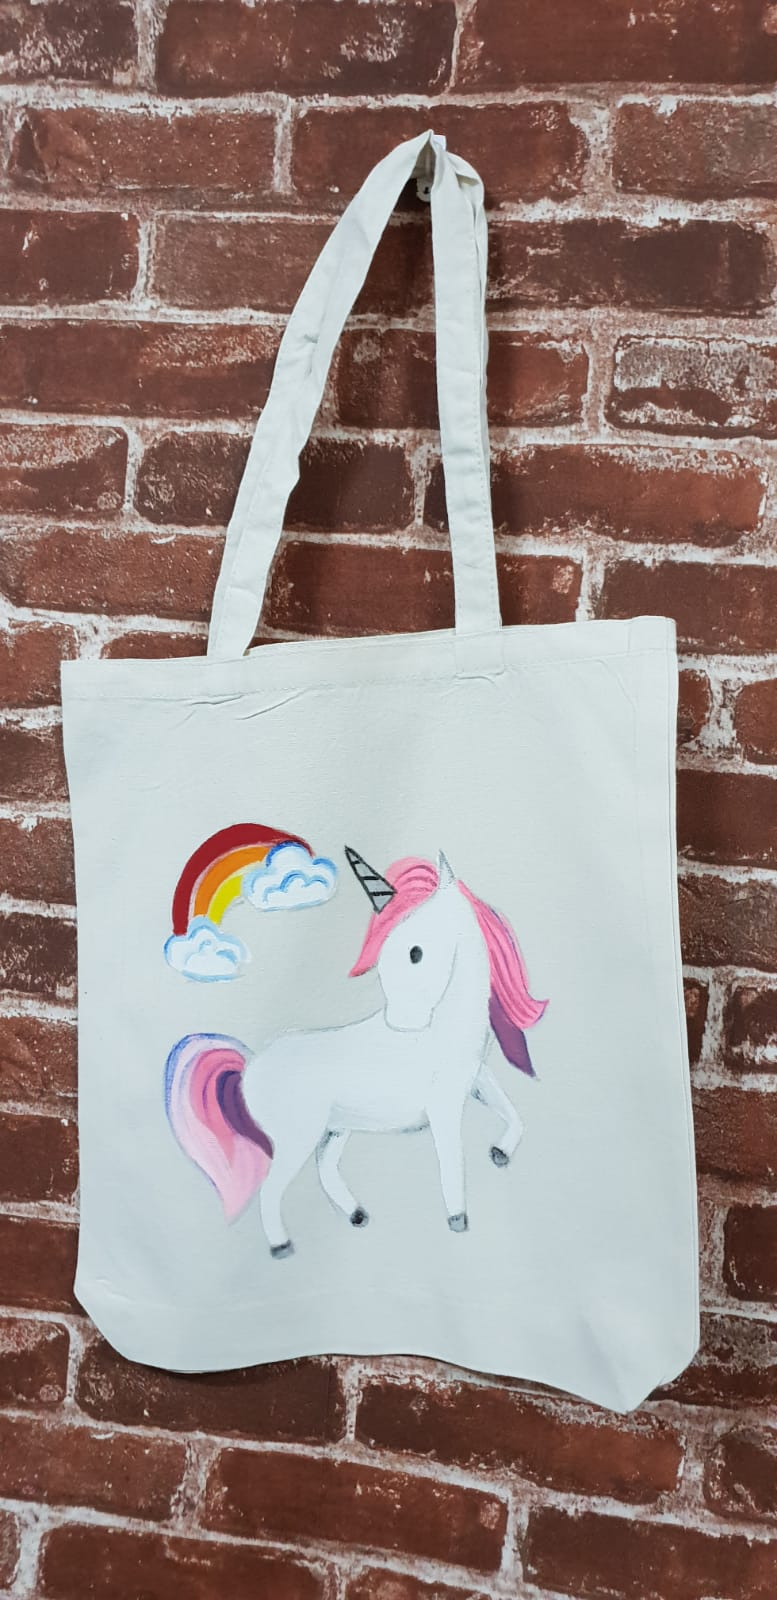 Art Jamming Singapore | Paint on Tees & Totes at The Noteway